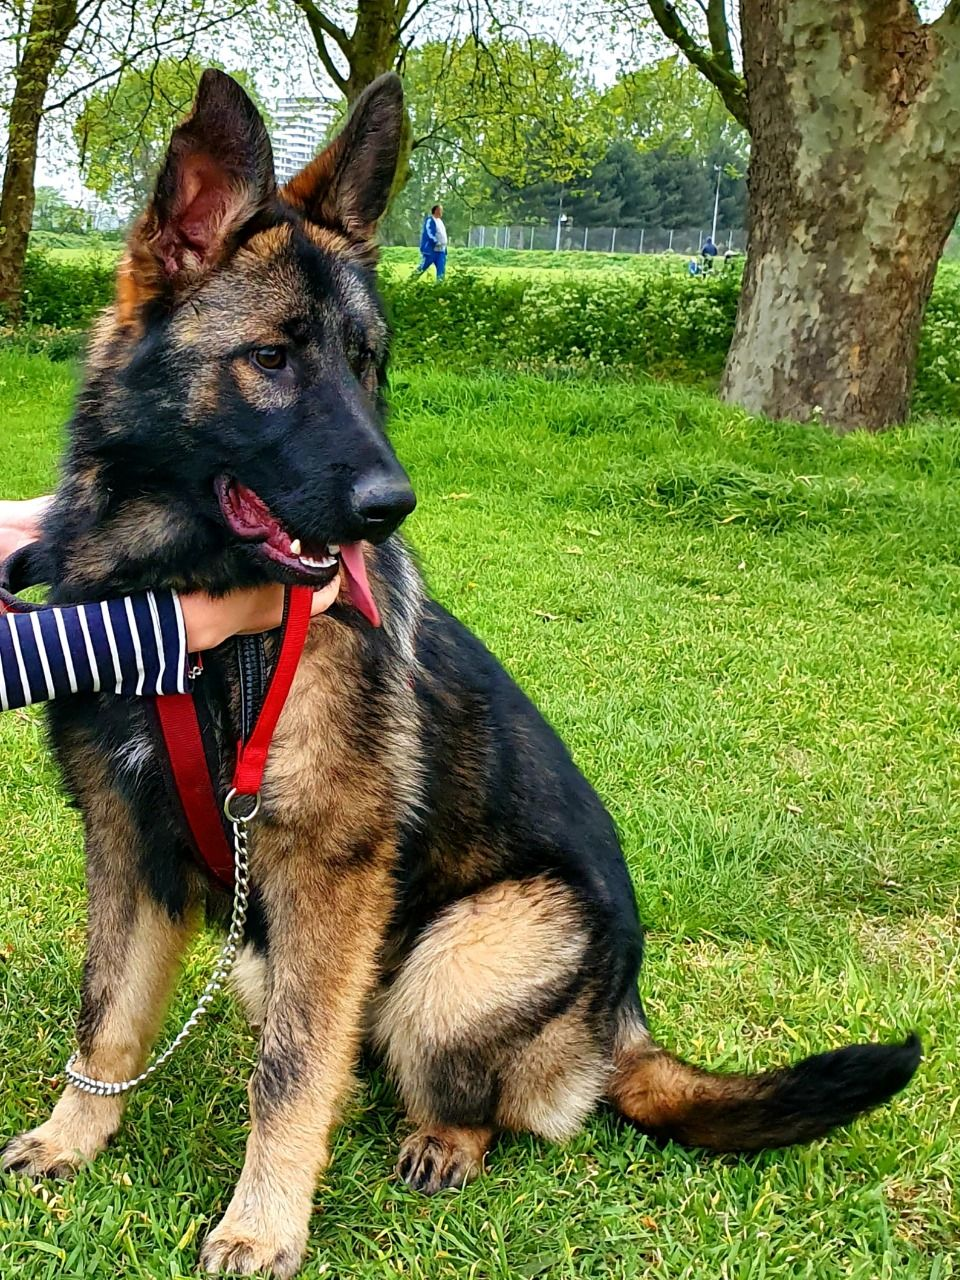 How to Care For a 6-month-old German shepherd puppy